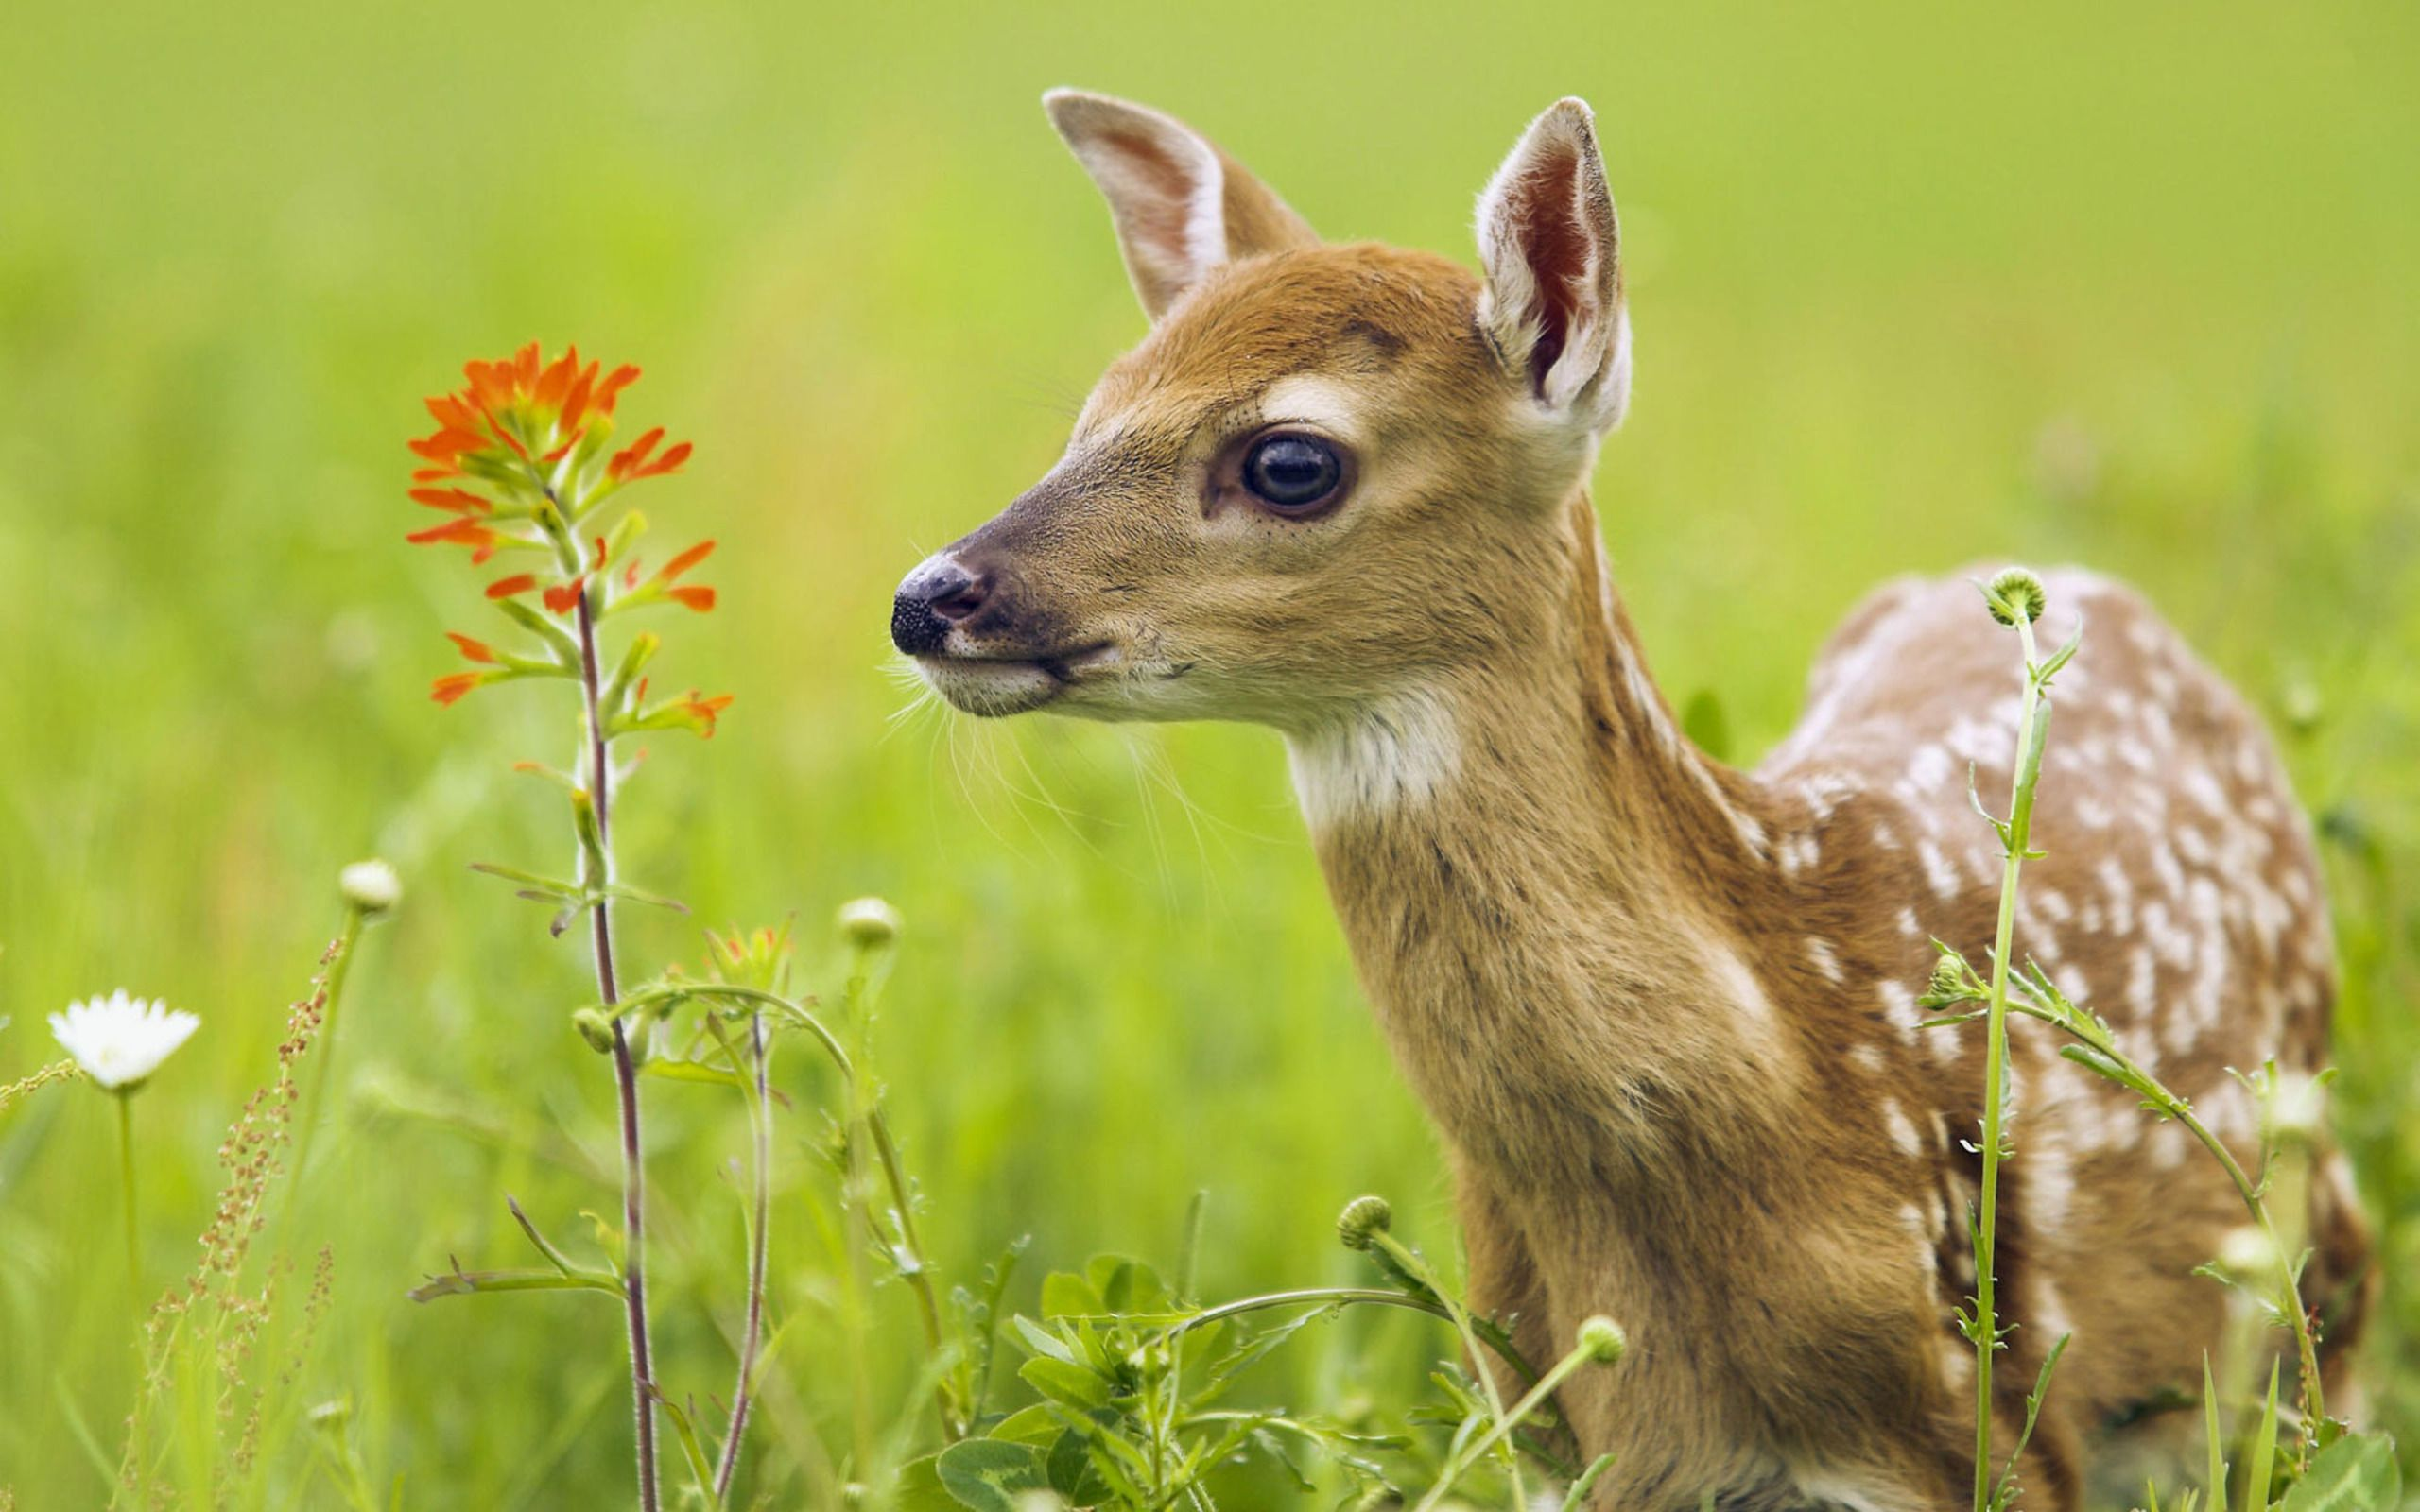 Cute Fawn wallpaper 2560x1600 12431 2560x1600